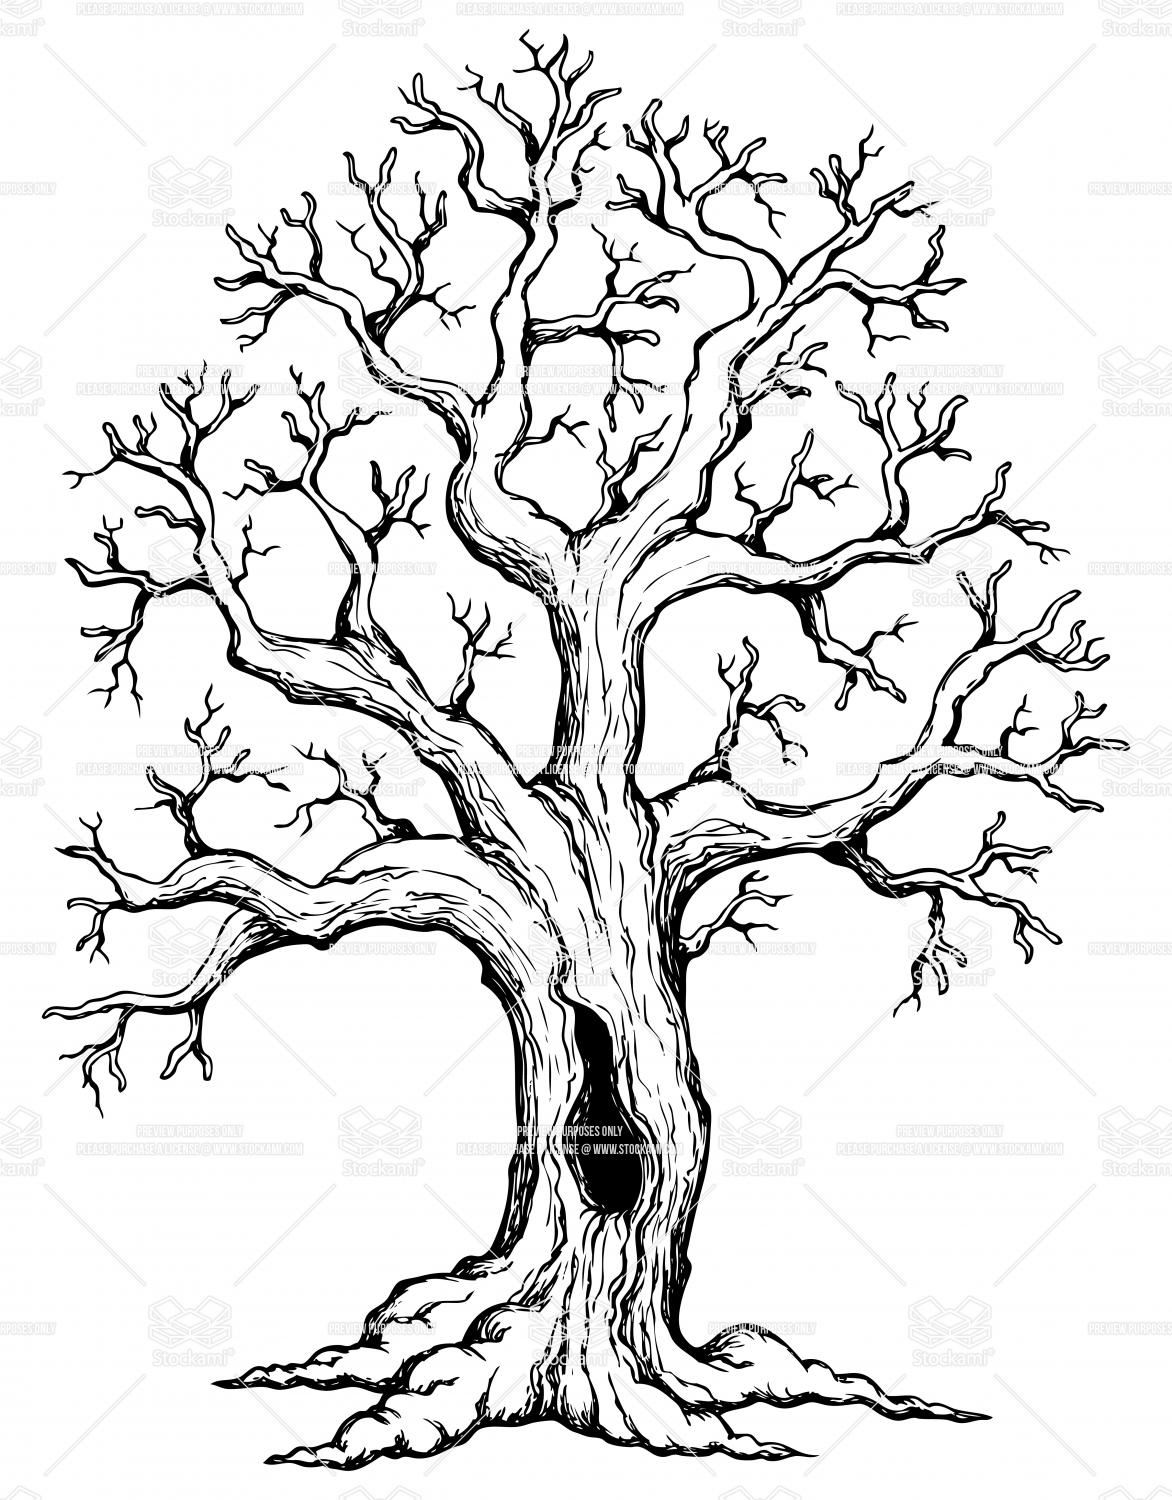 1172x1500 Oak Tree Drawings With Roots Illustrator's Description Tree